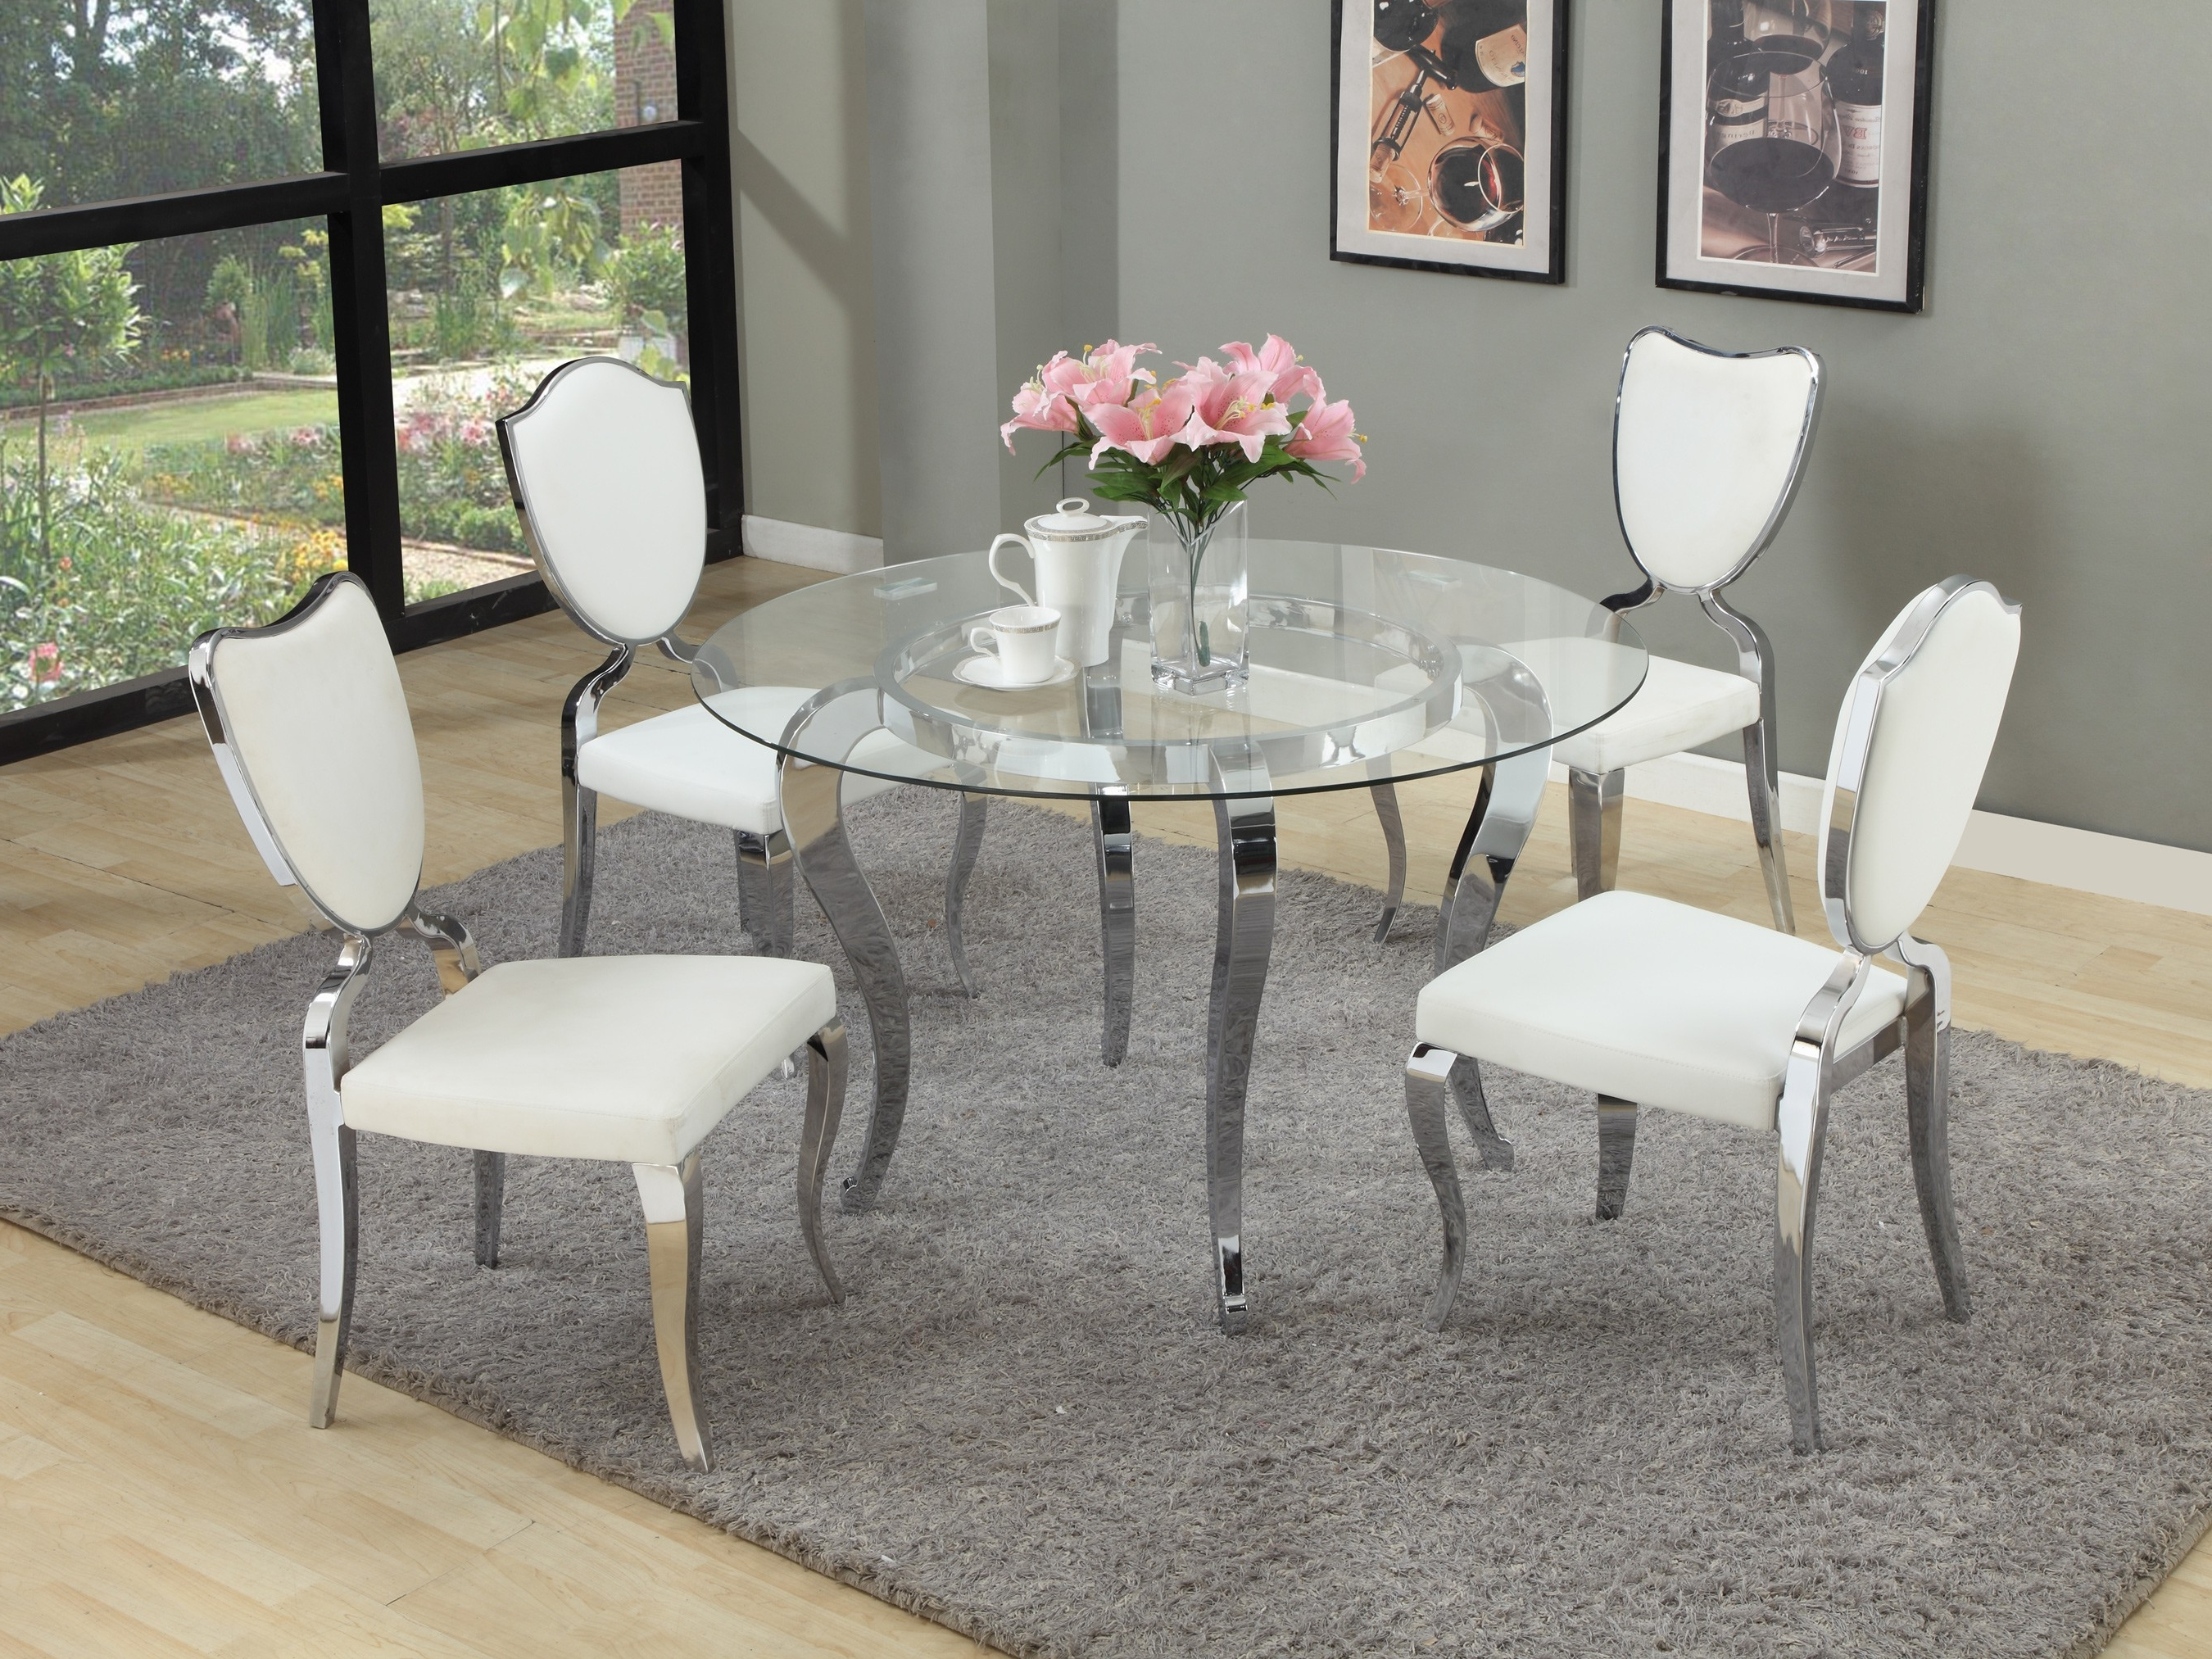 Glass Dining Tables Sets Inside Most Recently Released Round Dining Room Table Sets For 6 Refrence The Super Free Circle (Gallery 14 of 25)